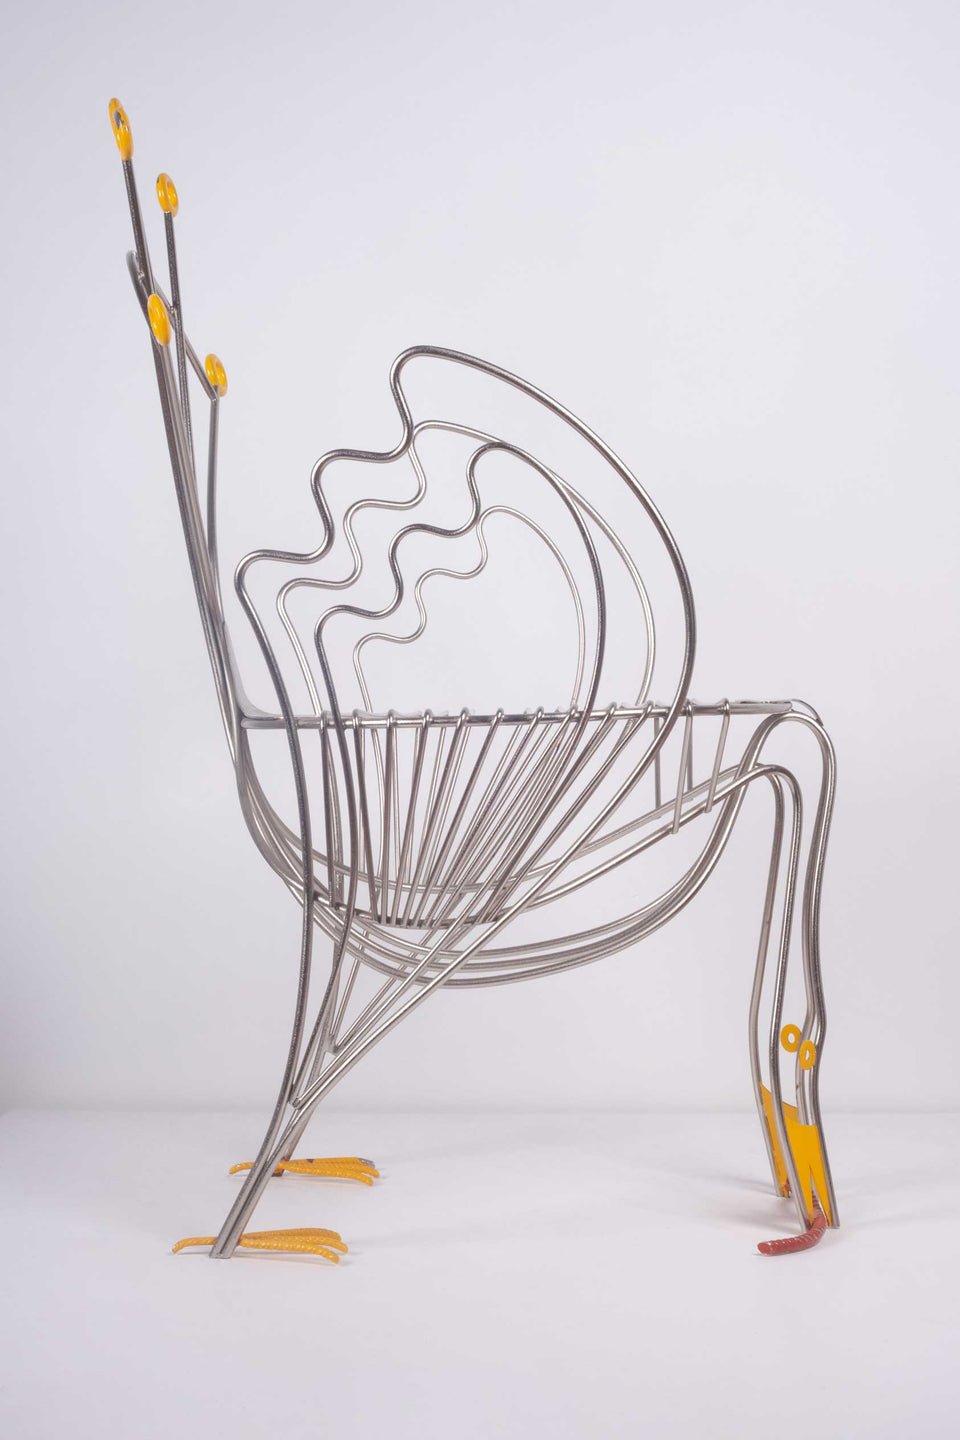 Pavone Chair by Riccardo Dalisi, limited edition for Zabro (Zanotta)1986